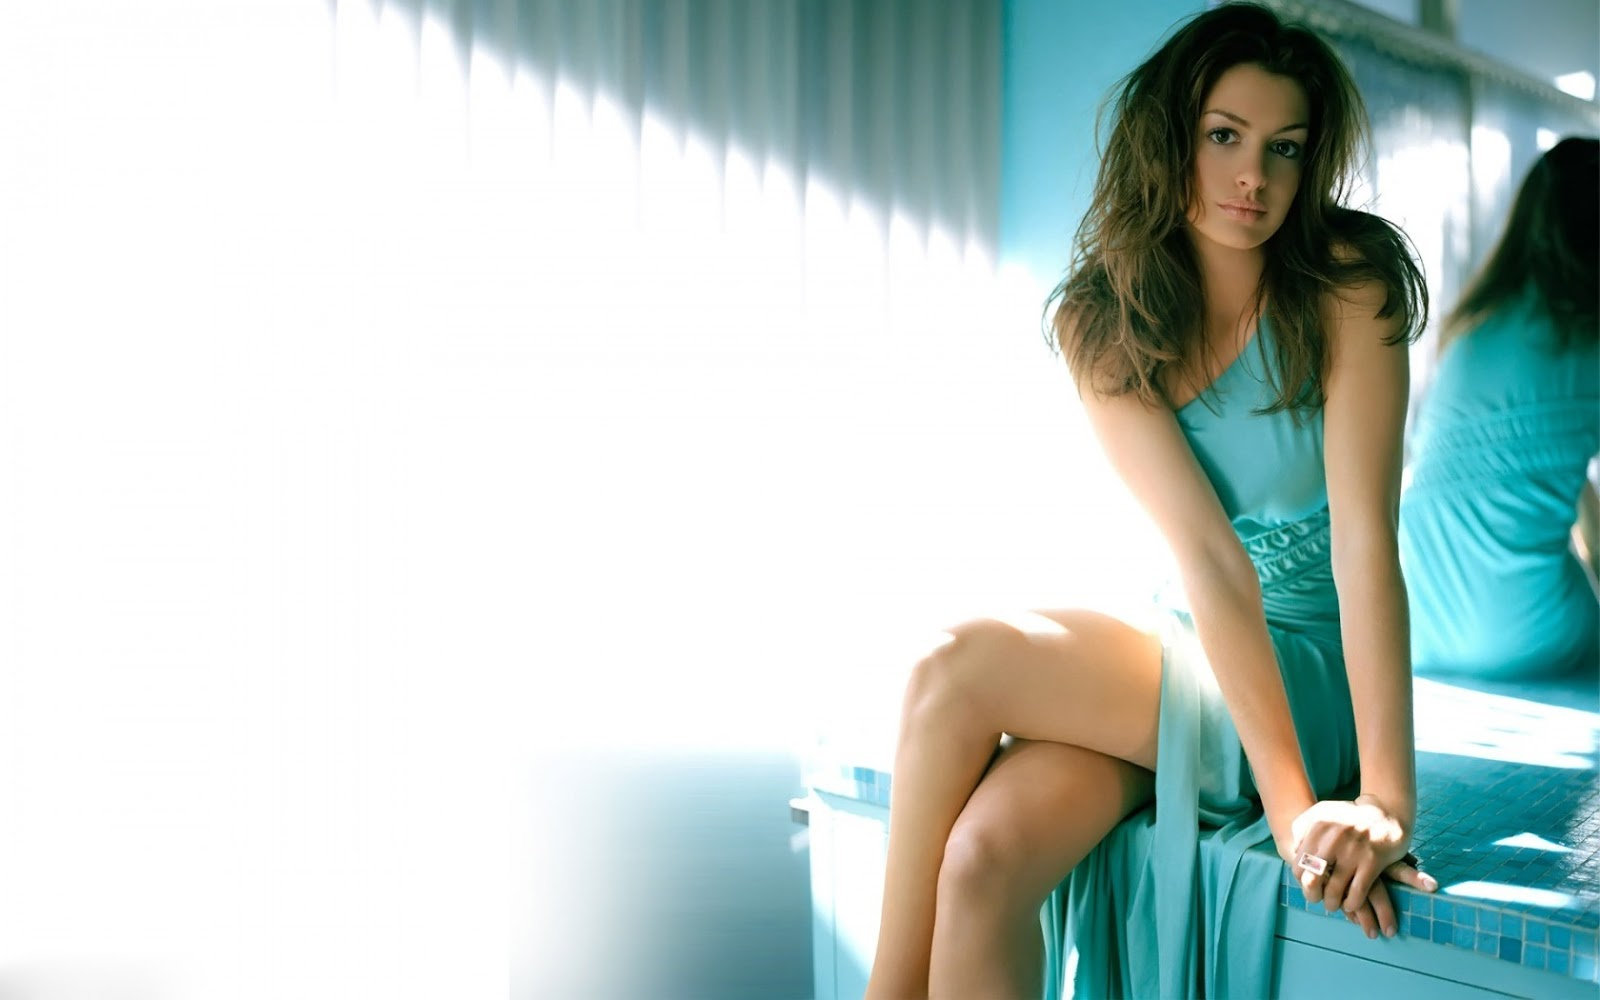 Hollywood sexiest images list in hindi dubbed